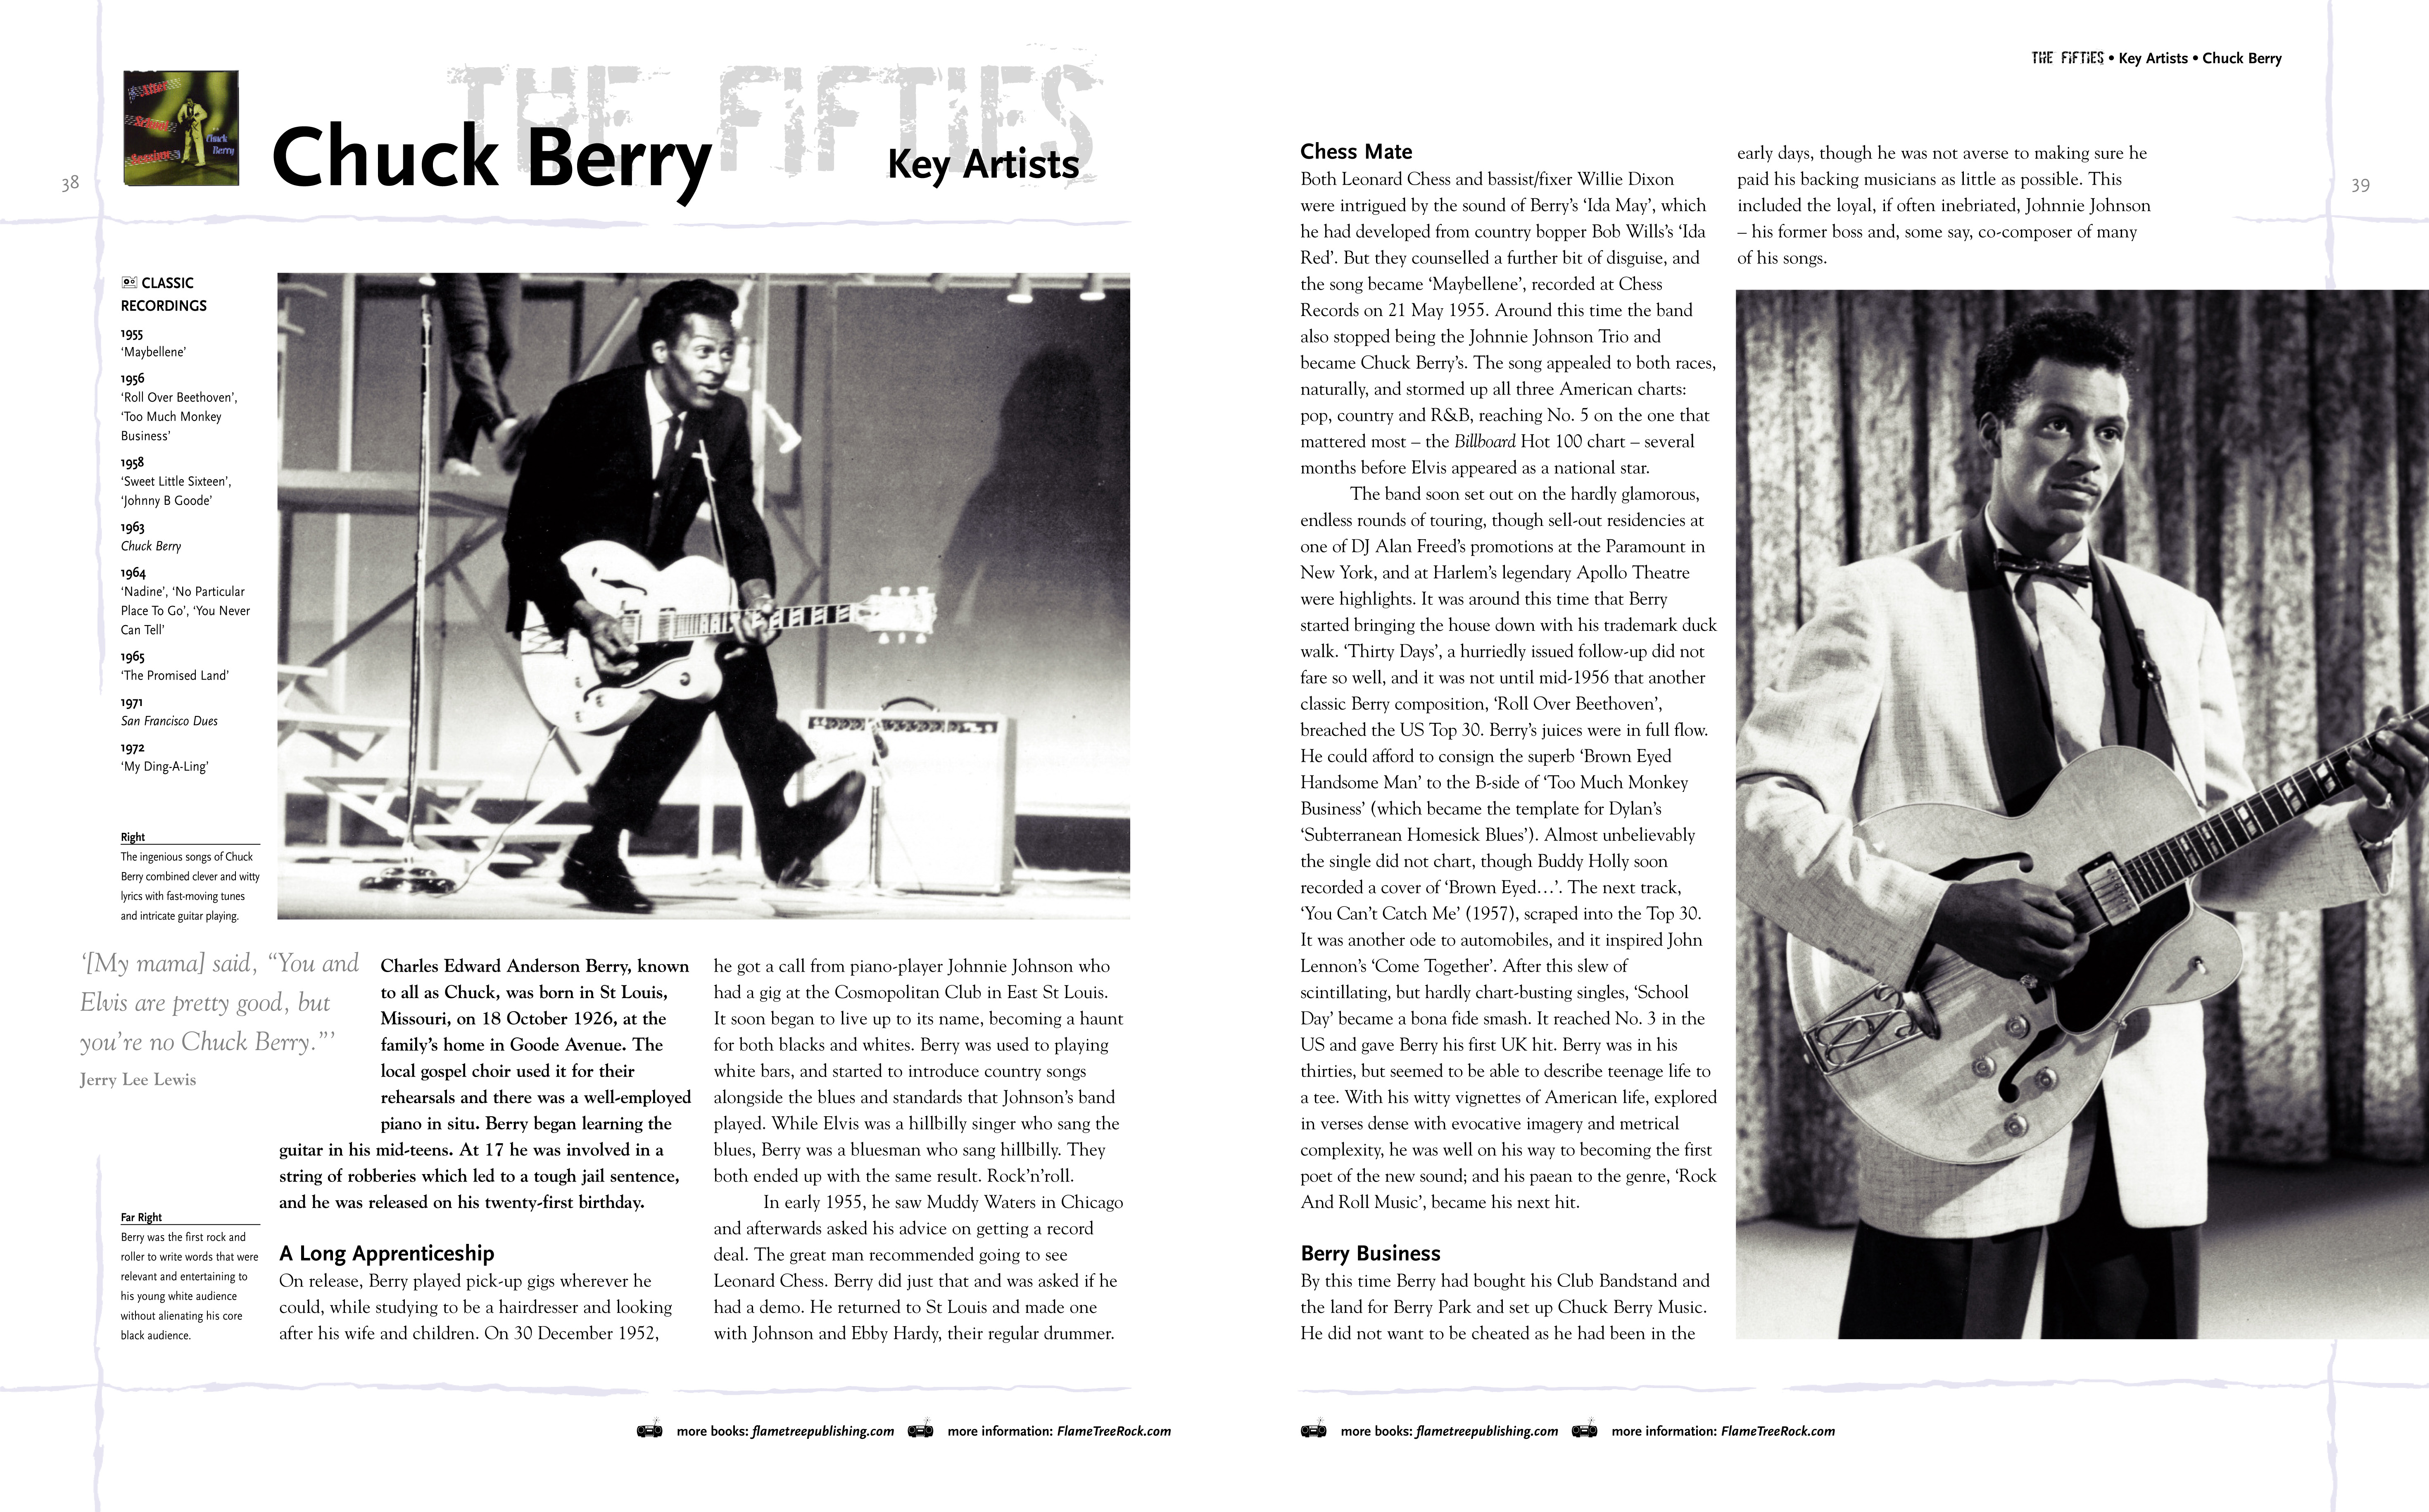 Classic Rock Bands spread, Chuck Berry